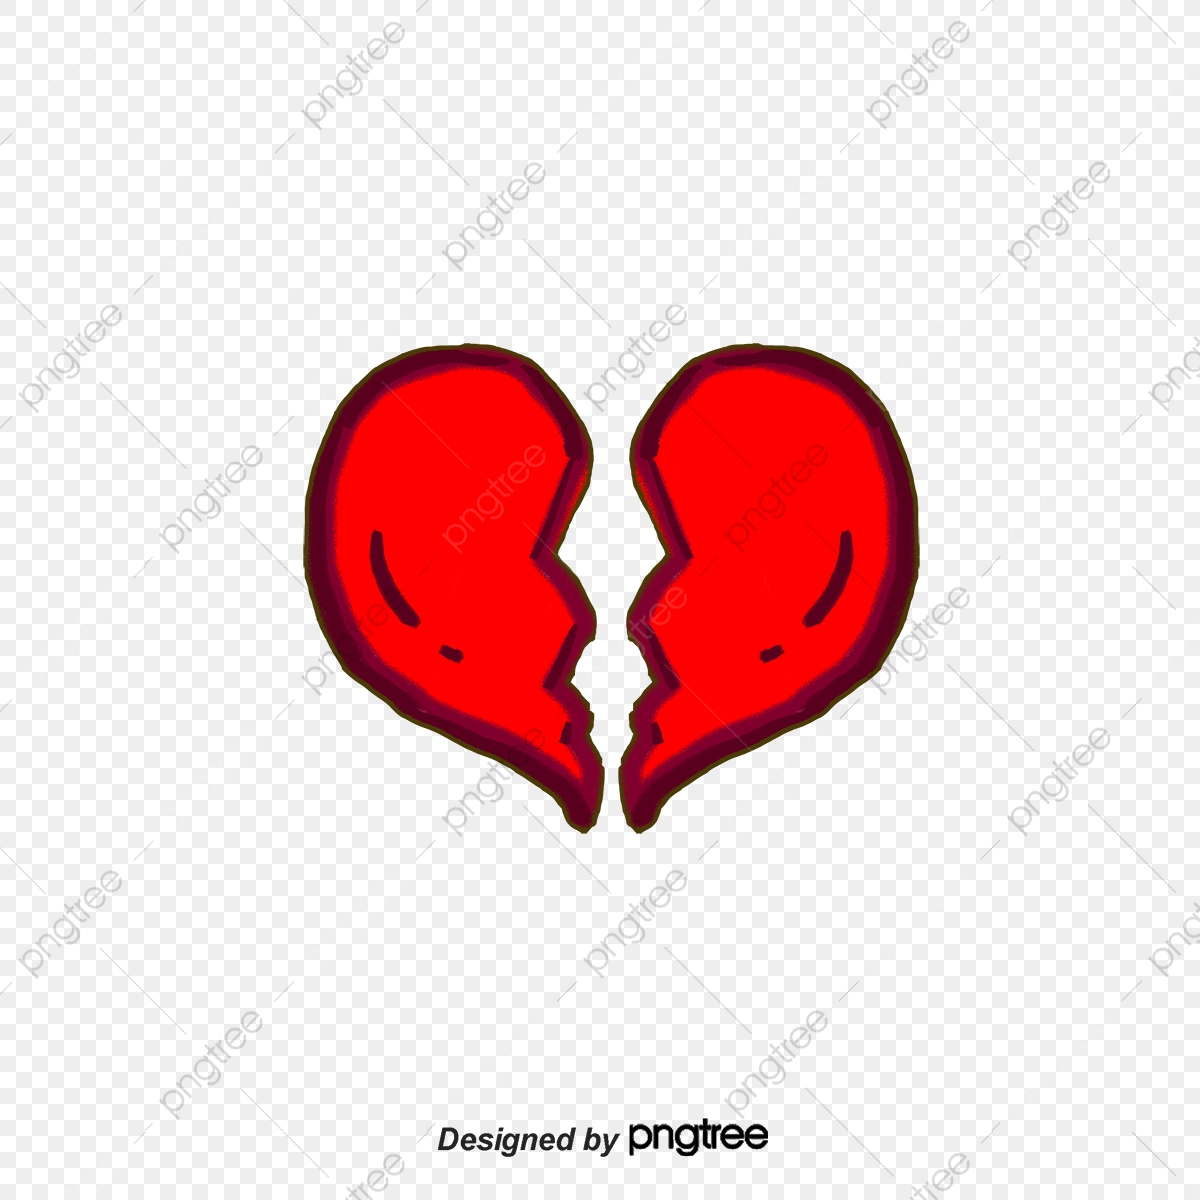 Heartbreak, Sad, Cartoon PNG Transparent Clipart Image and PSD File.